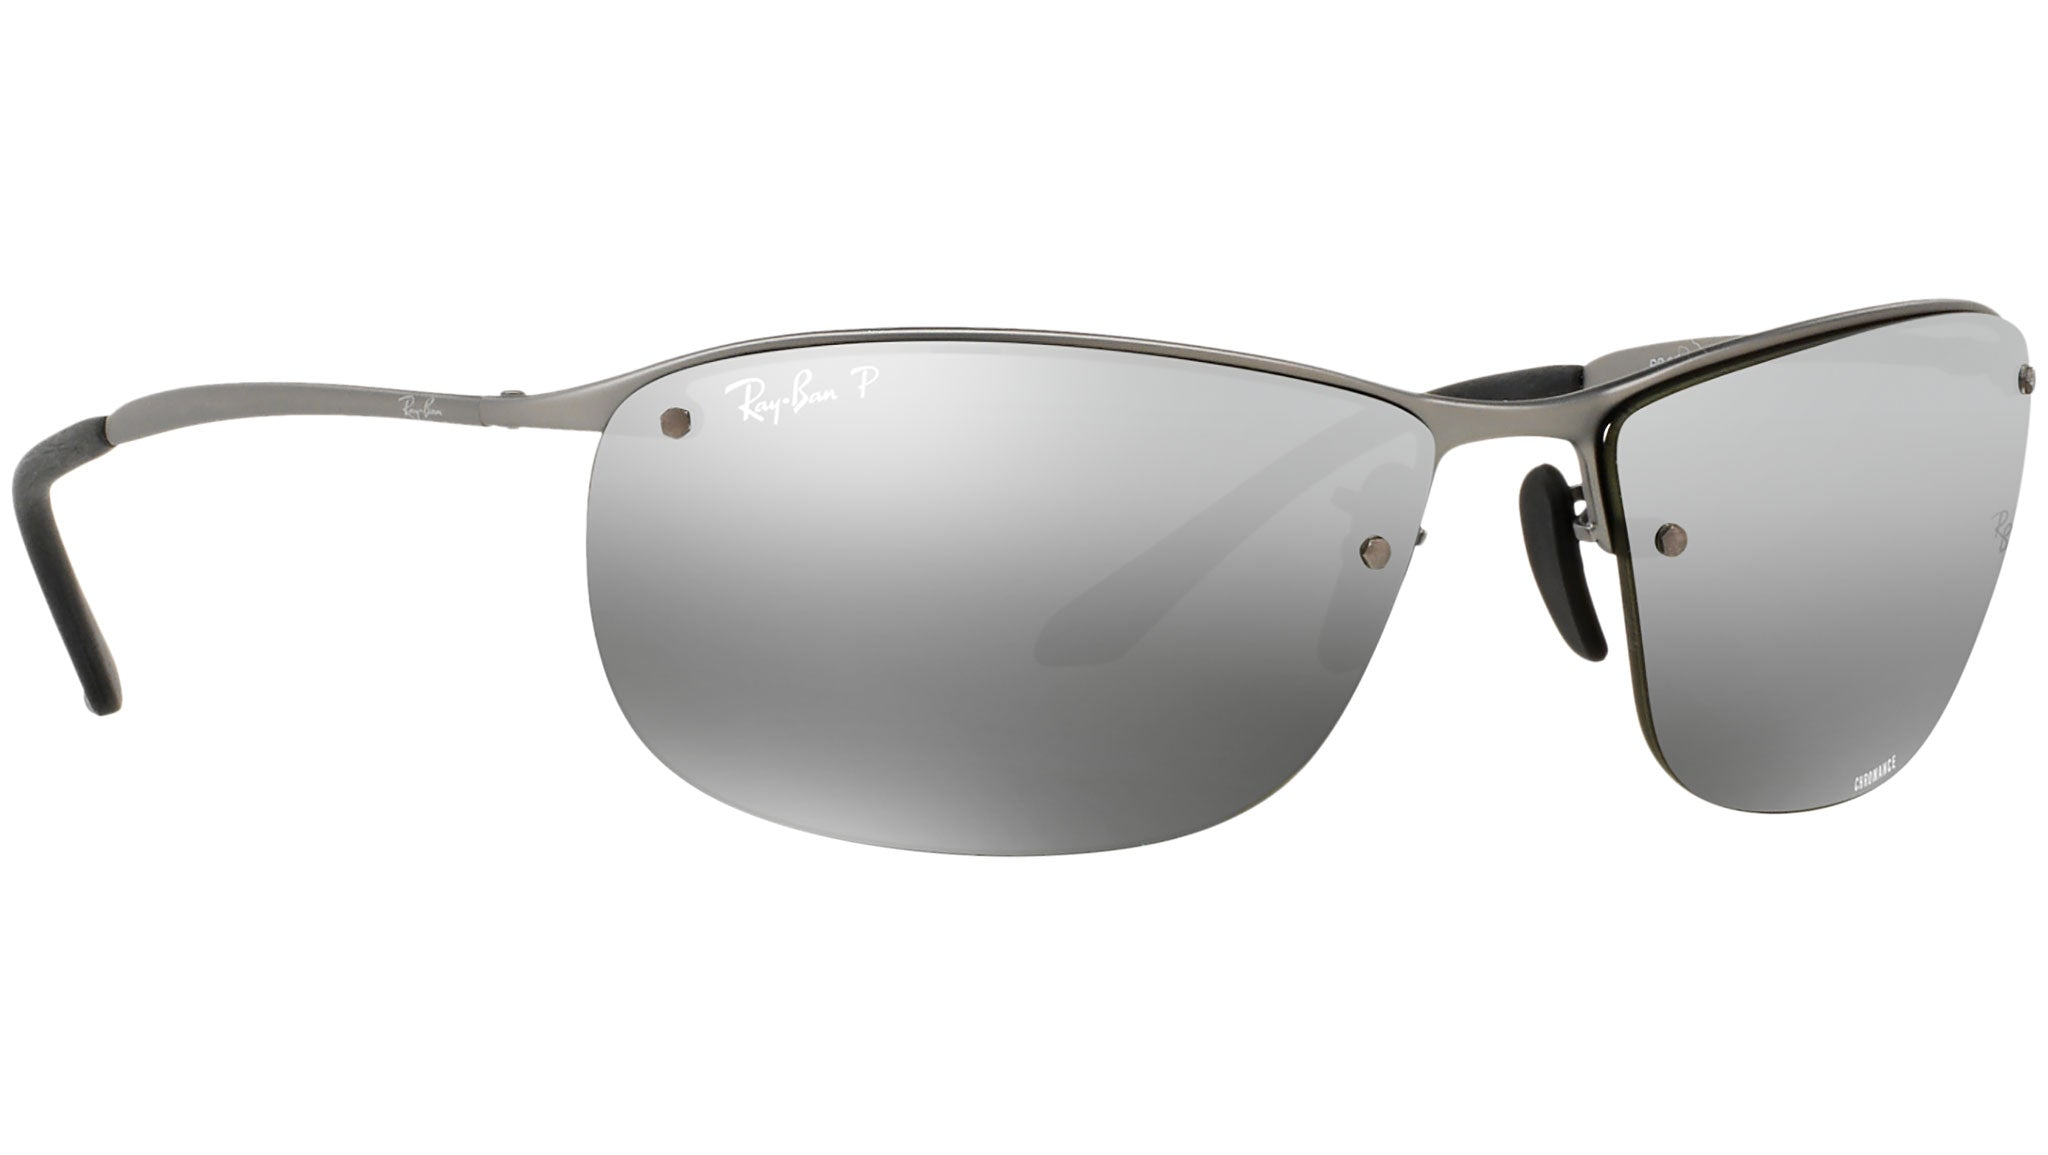 Chromance RB3542 matte gunmetal--eye-oo.it